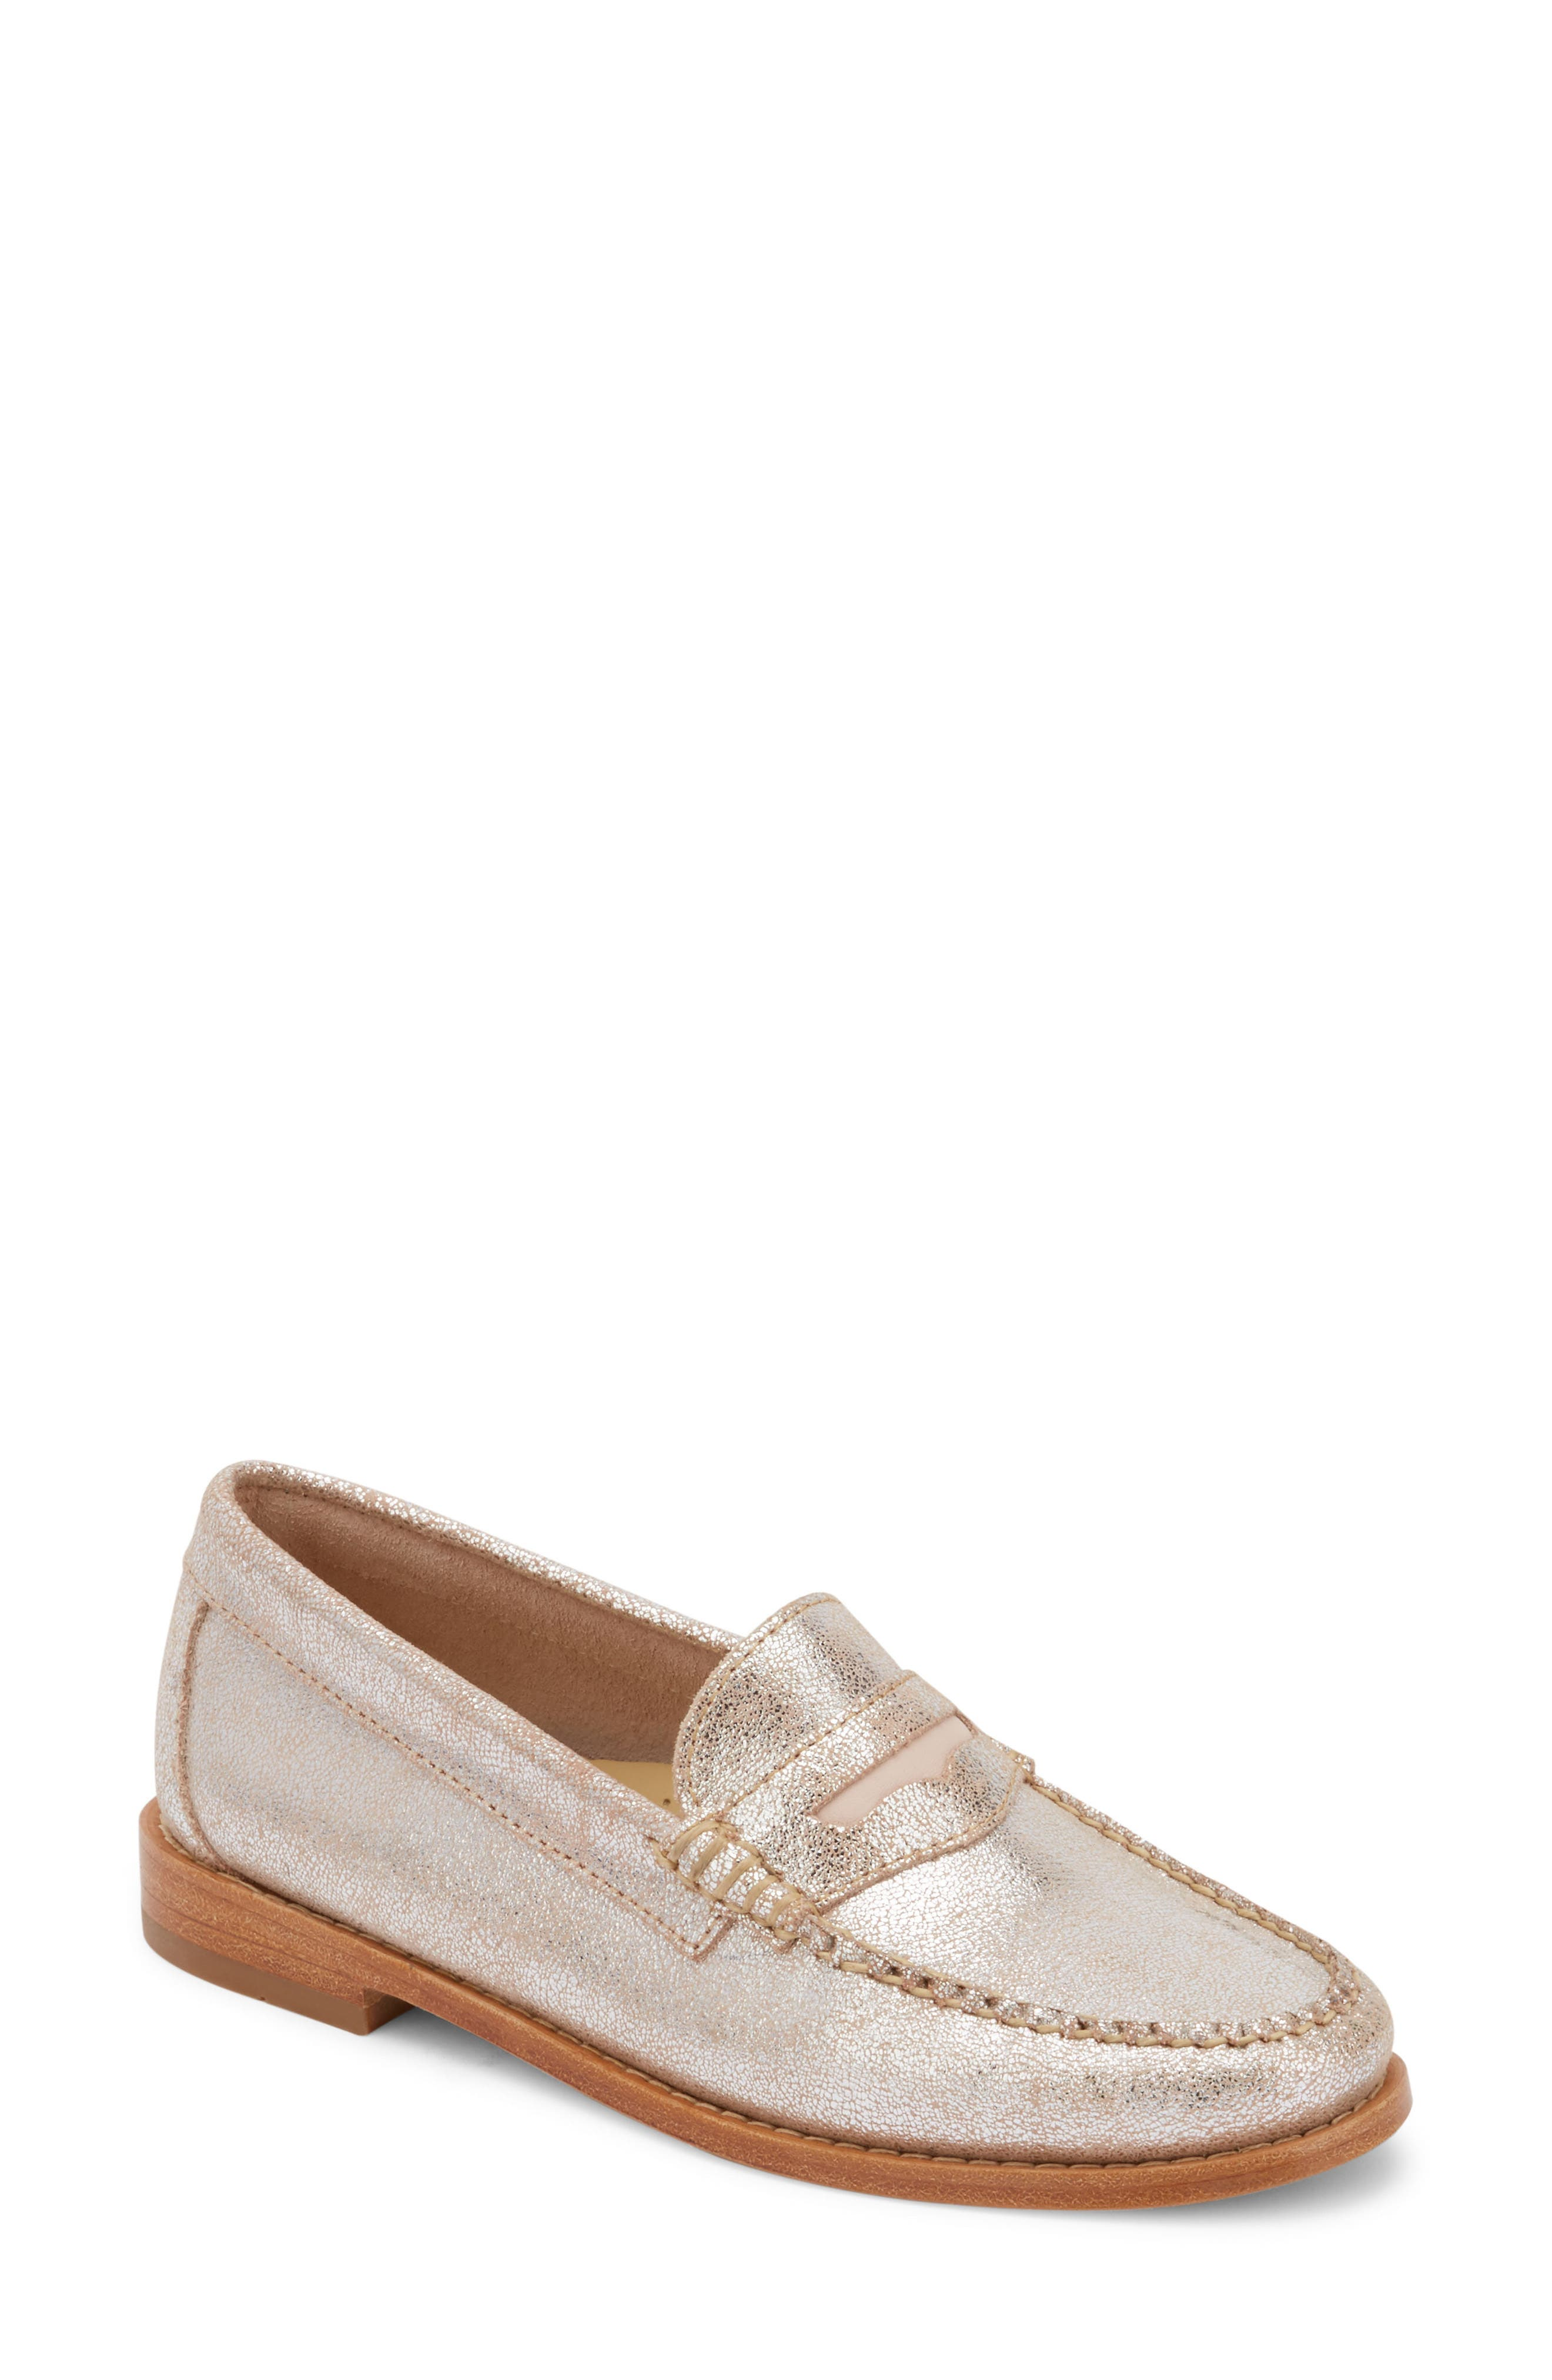 'Whitney' Loafer,                             Main thumbnail 16, color,